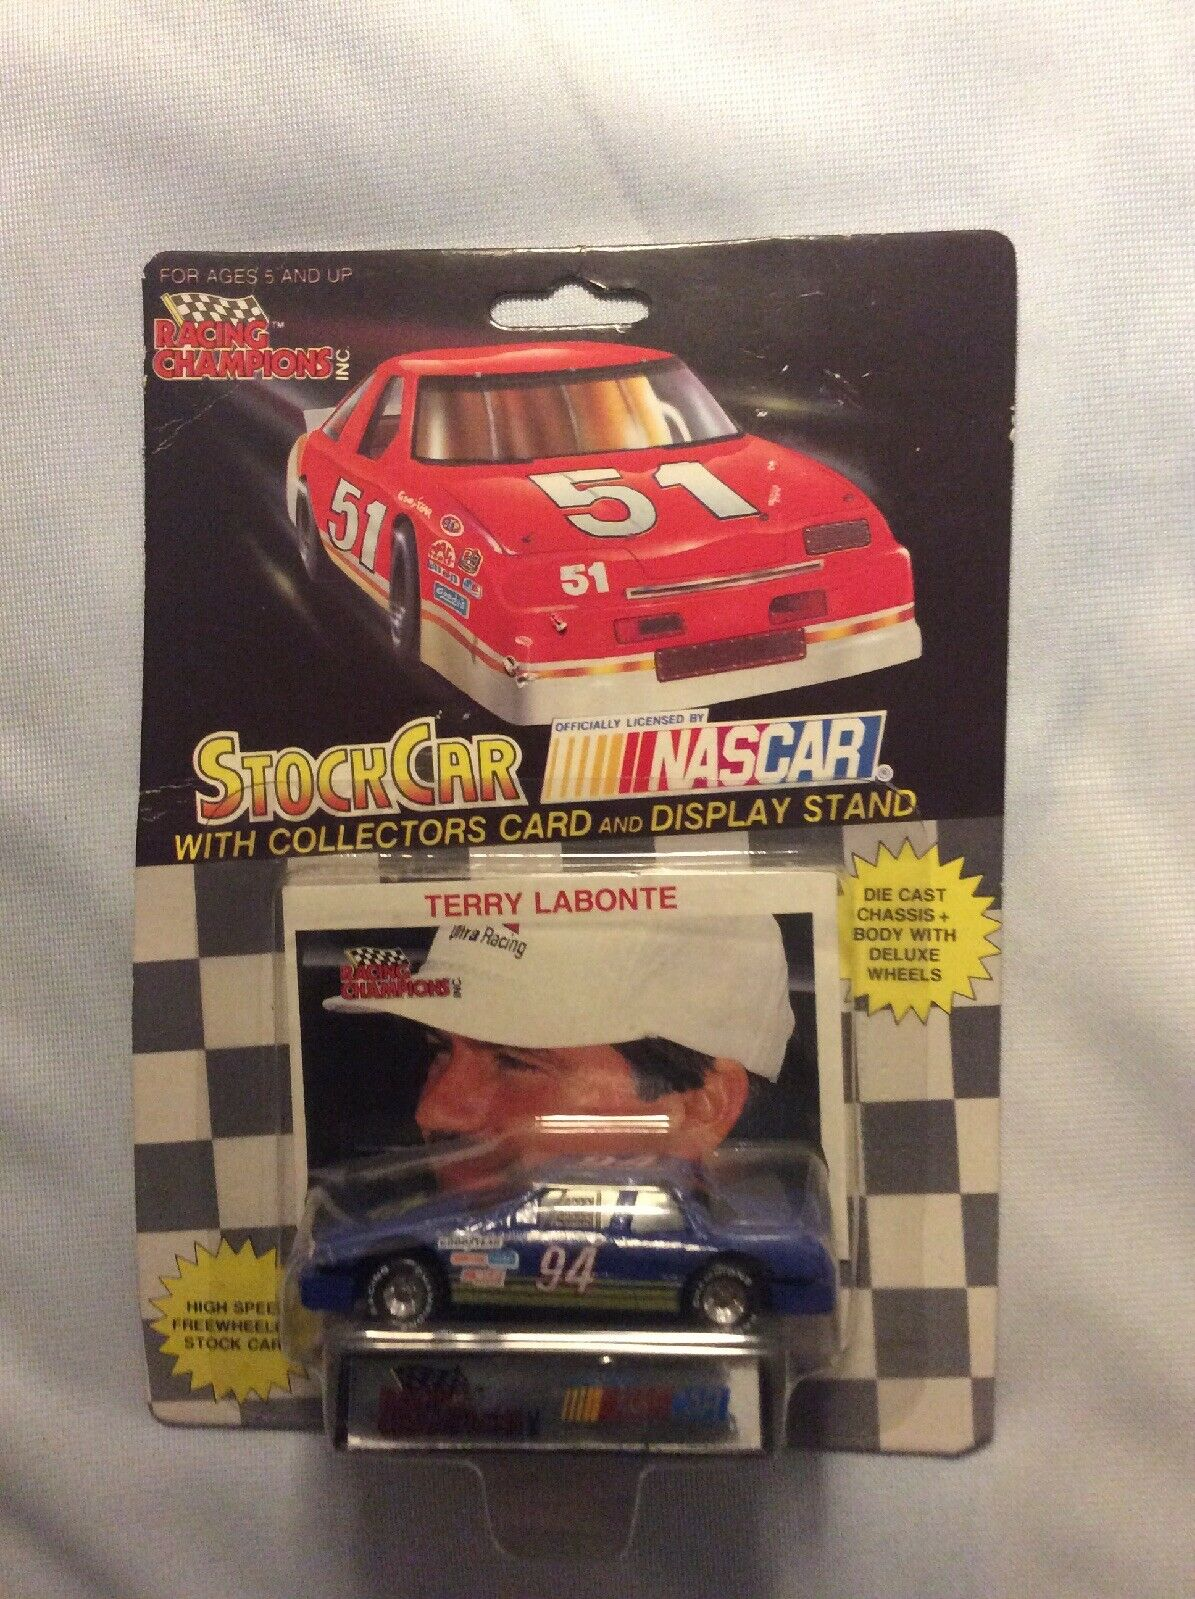 Terry Labonte Racing Legends Collectible Die Cast